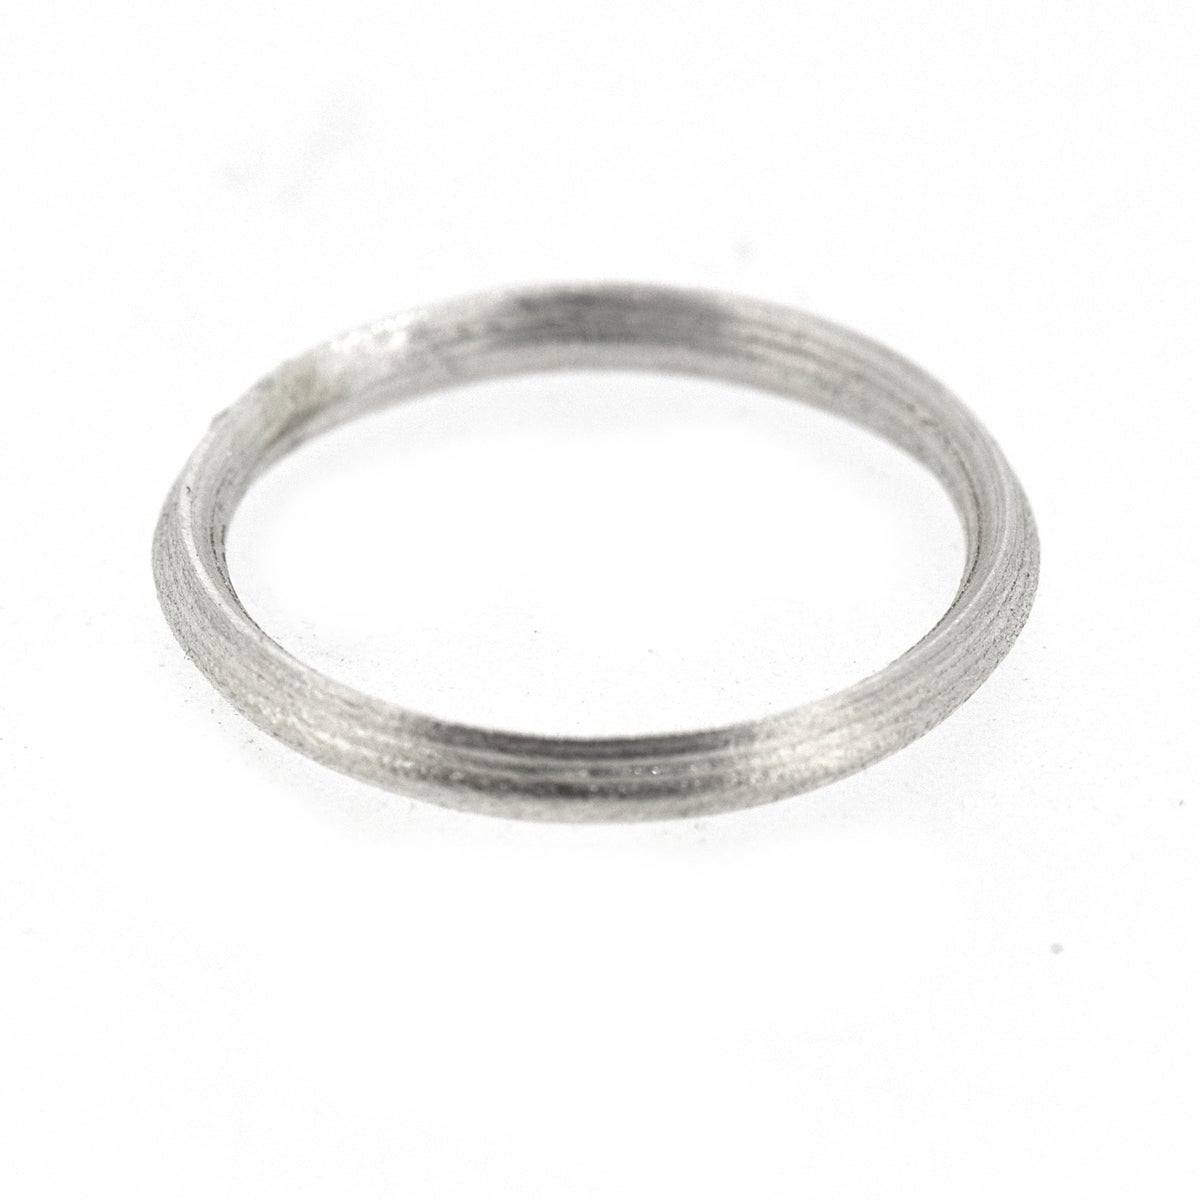 Sterling Silver Round 'Strata' Ring. 3.3mm diameter dome shaped band